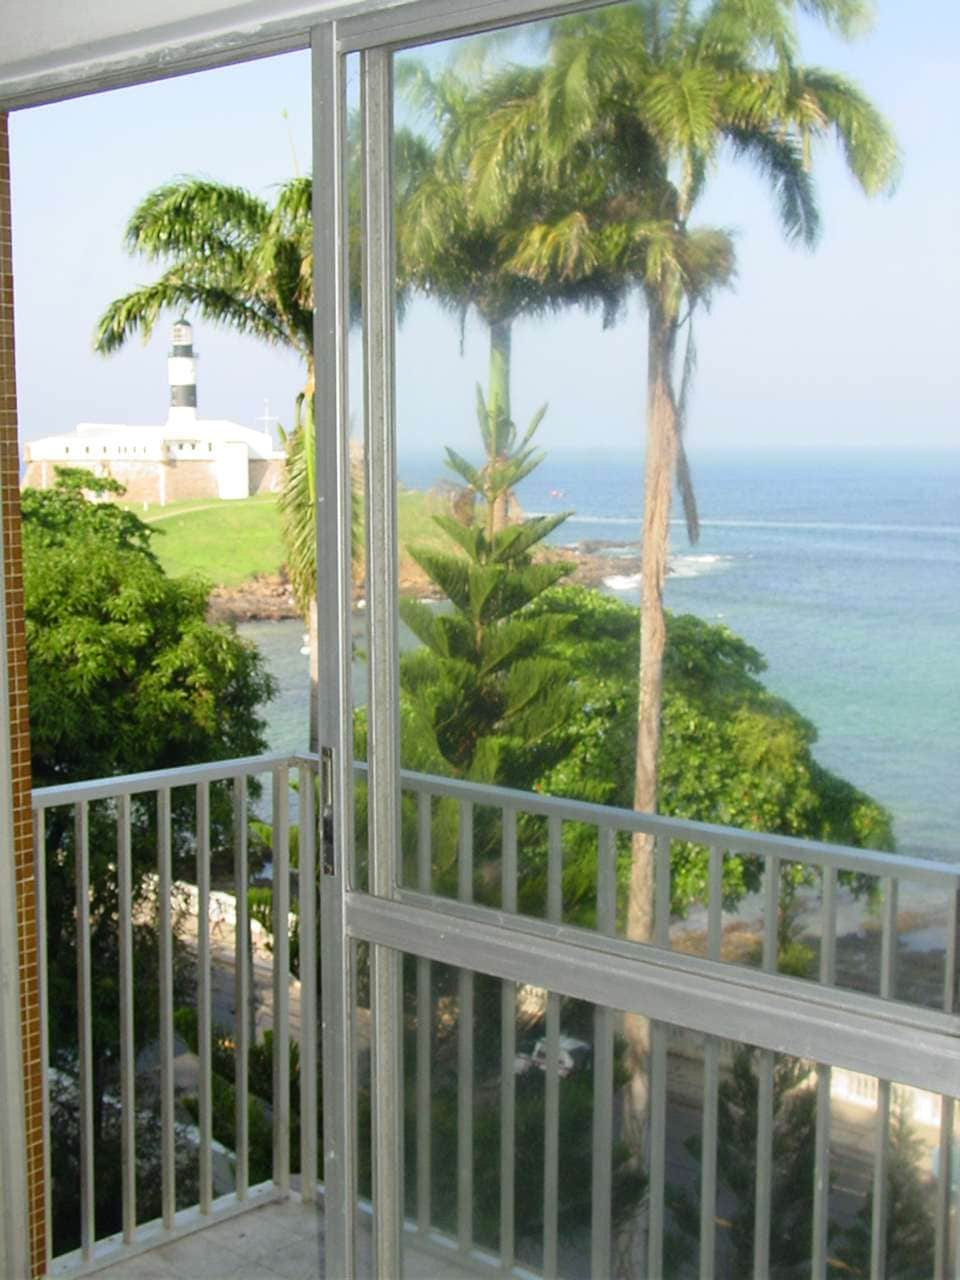 this is your veranda, the view is simply incredible